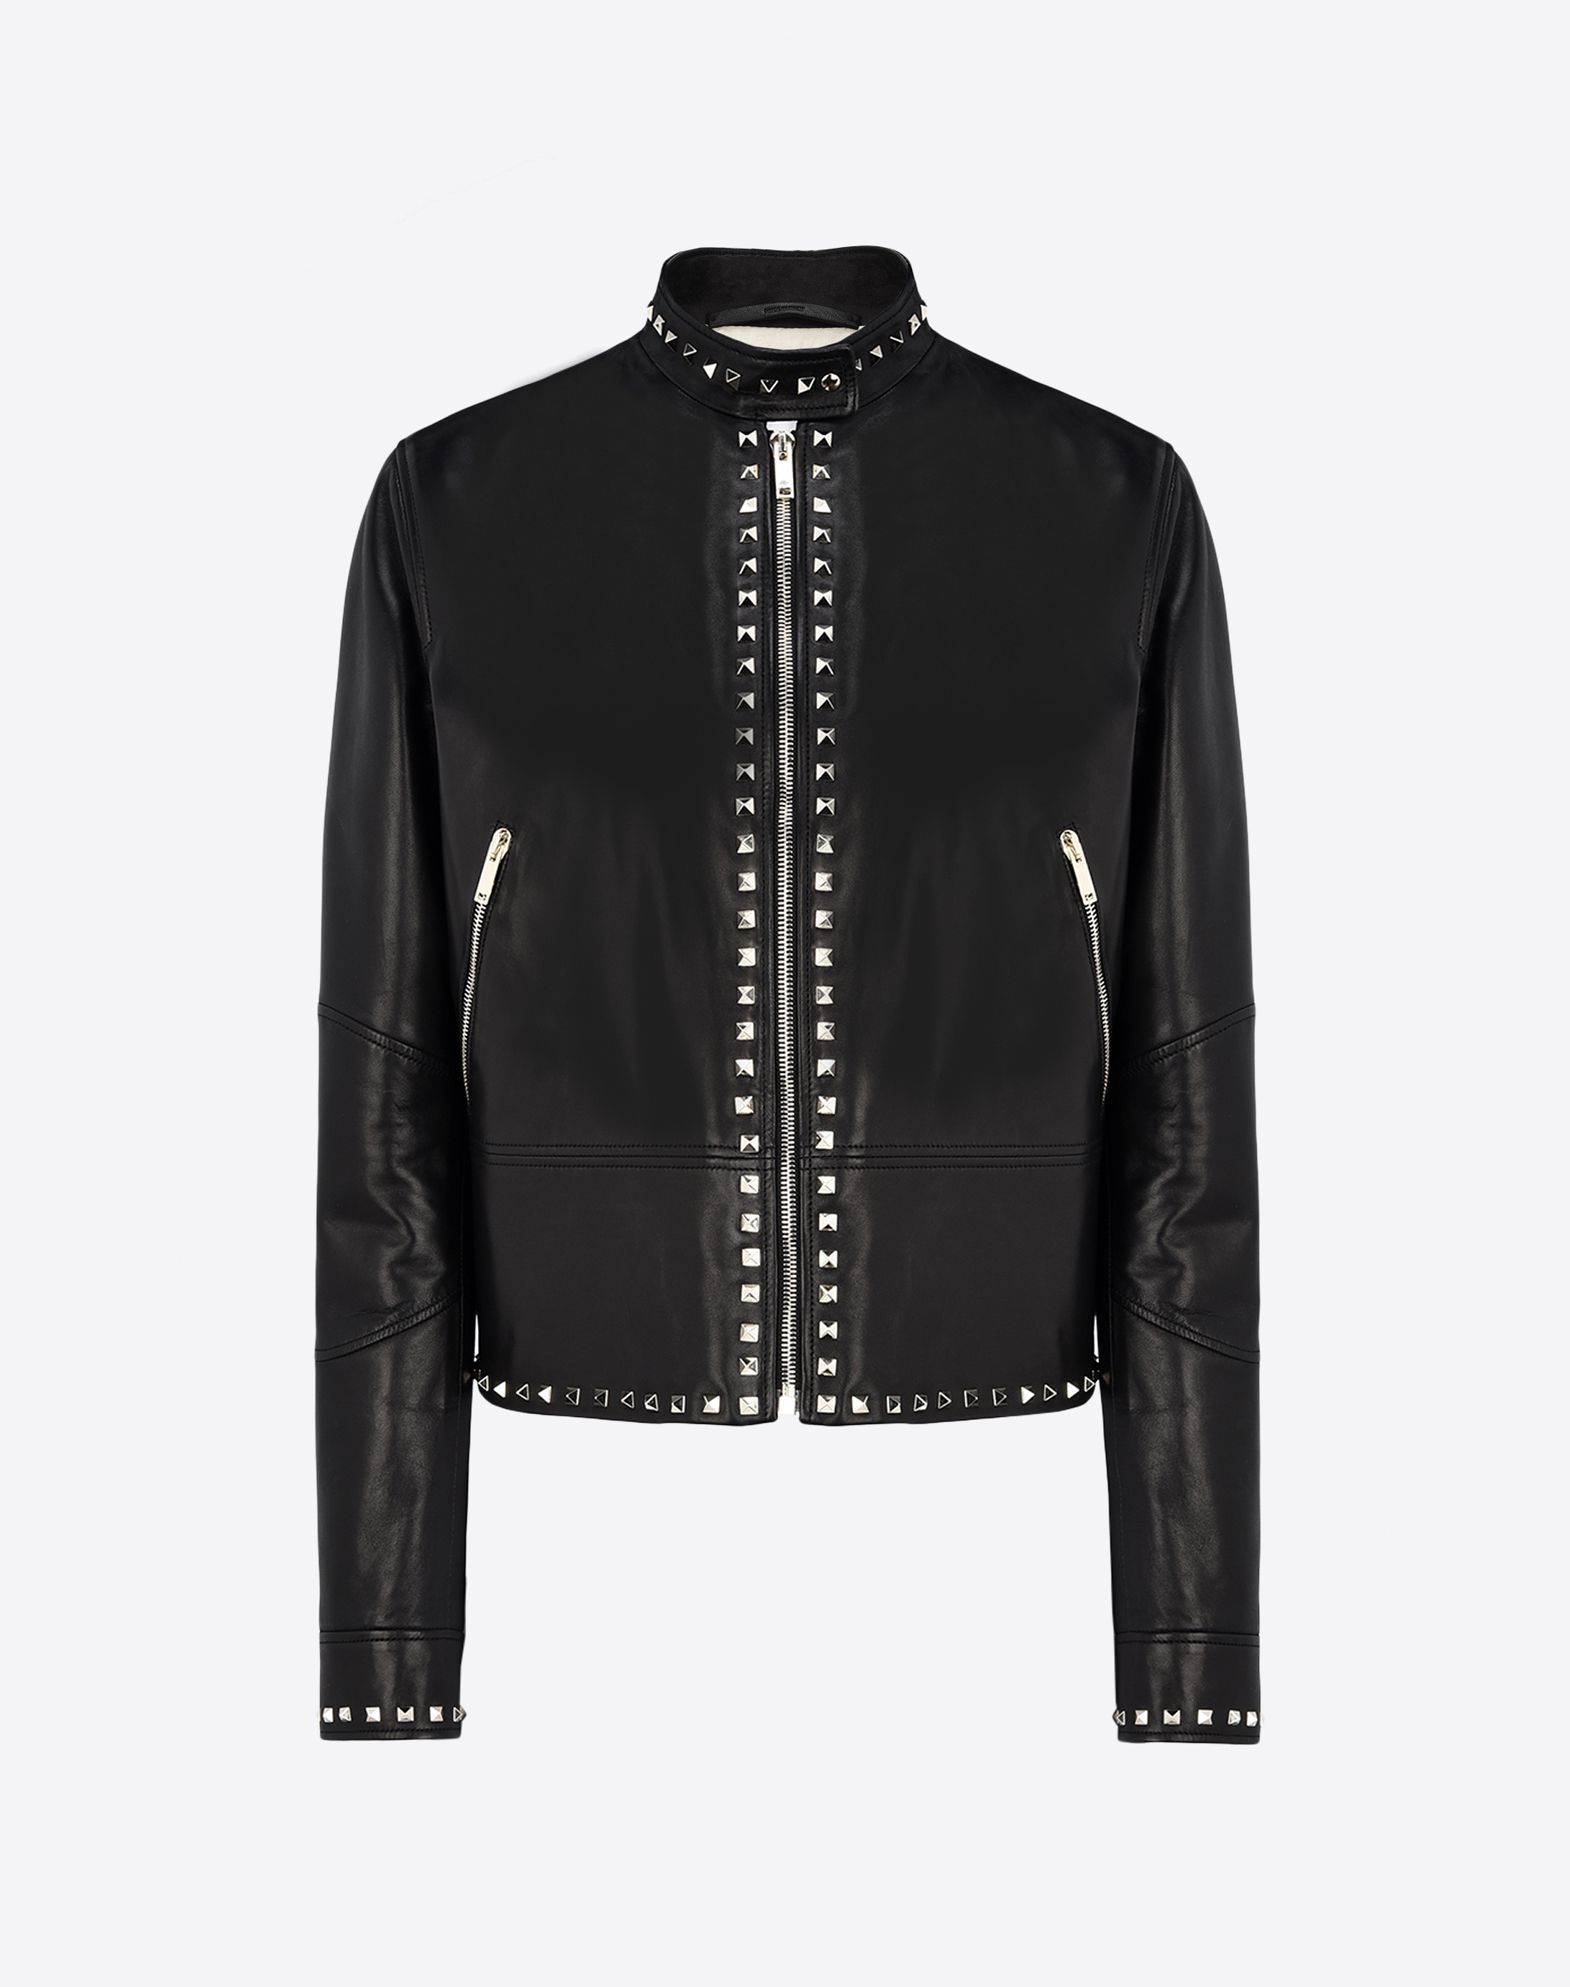 COATS & JACKETS - Jackets Valentino Ebay Cheap Online Cheap Sale New Styles Lowest Price Sale Online Discount 2018 Unisex Sale Real I3cnz